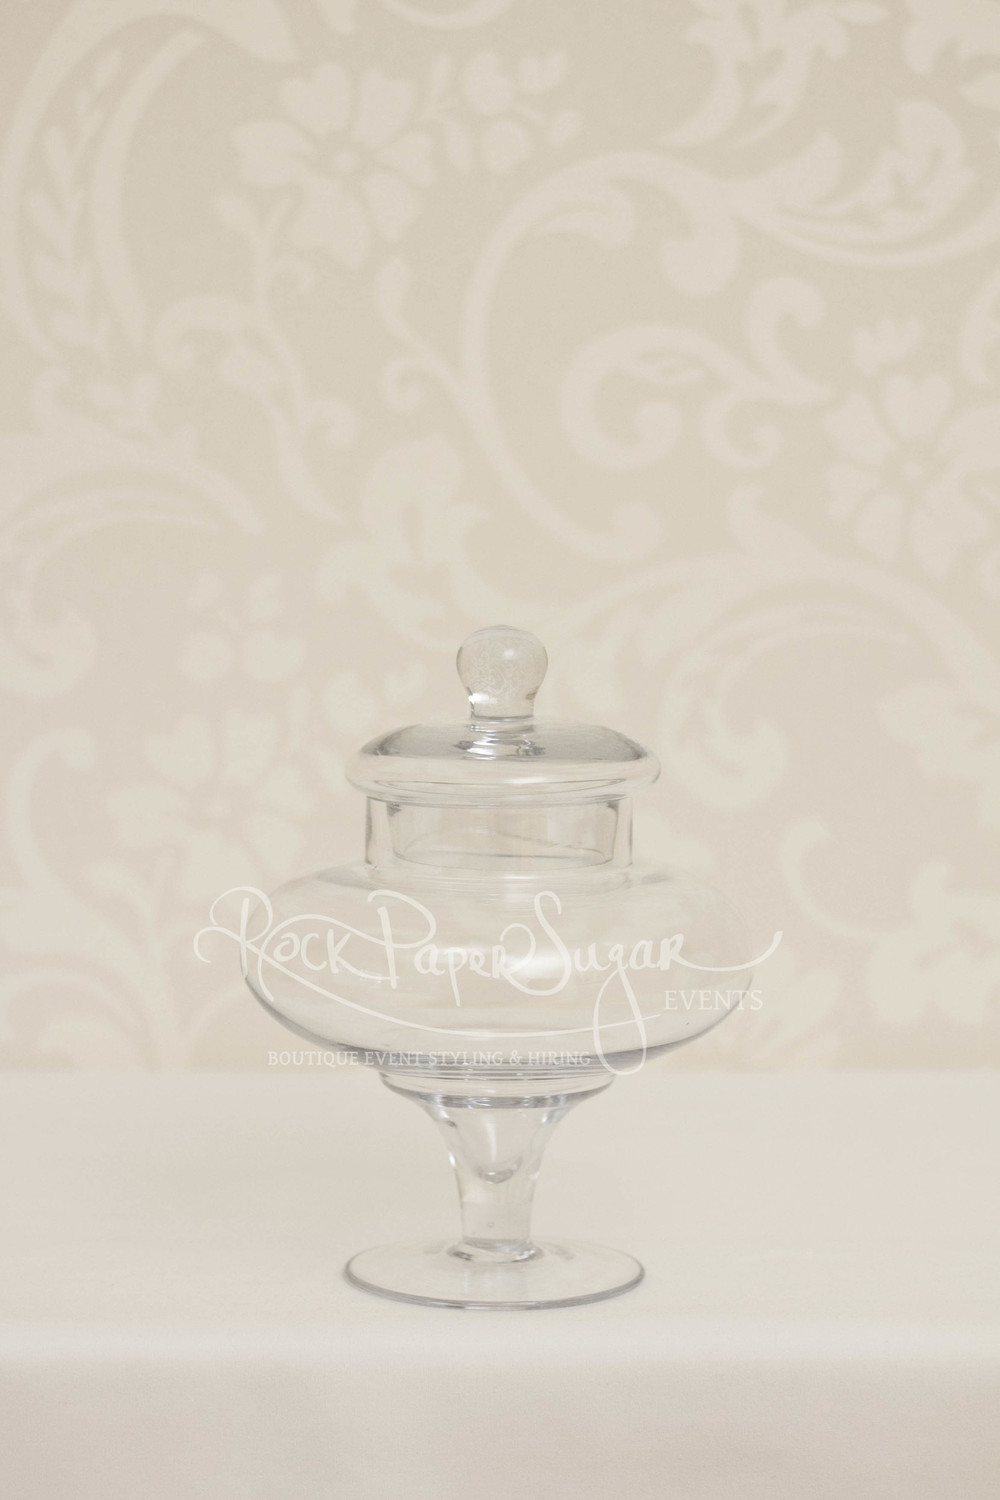 Rock Paper Sugar Events Glassware 003.jpg